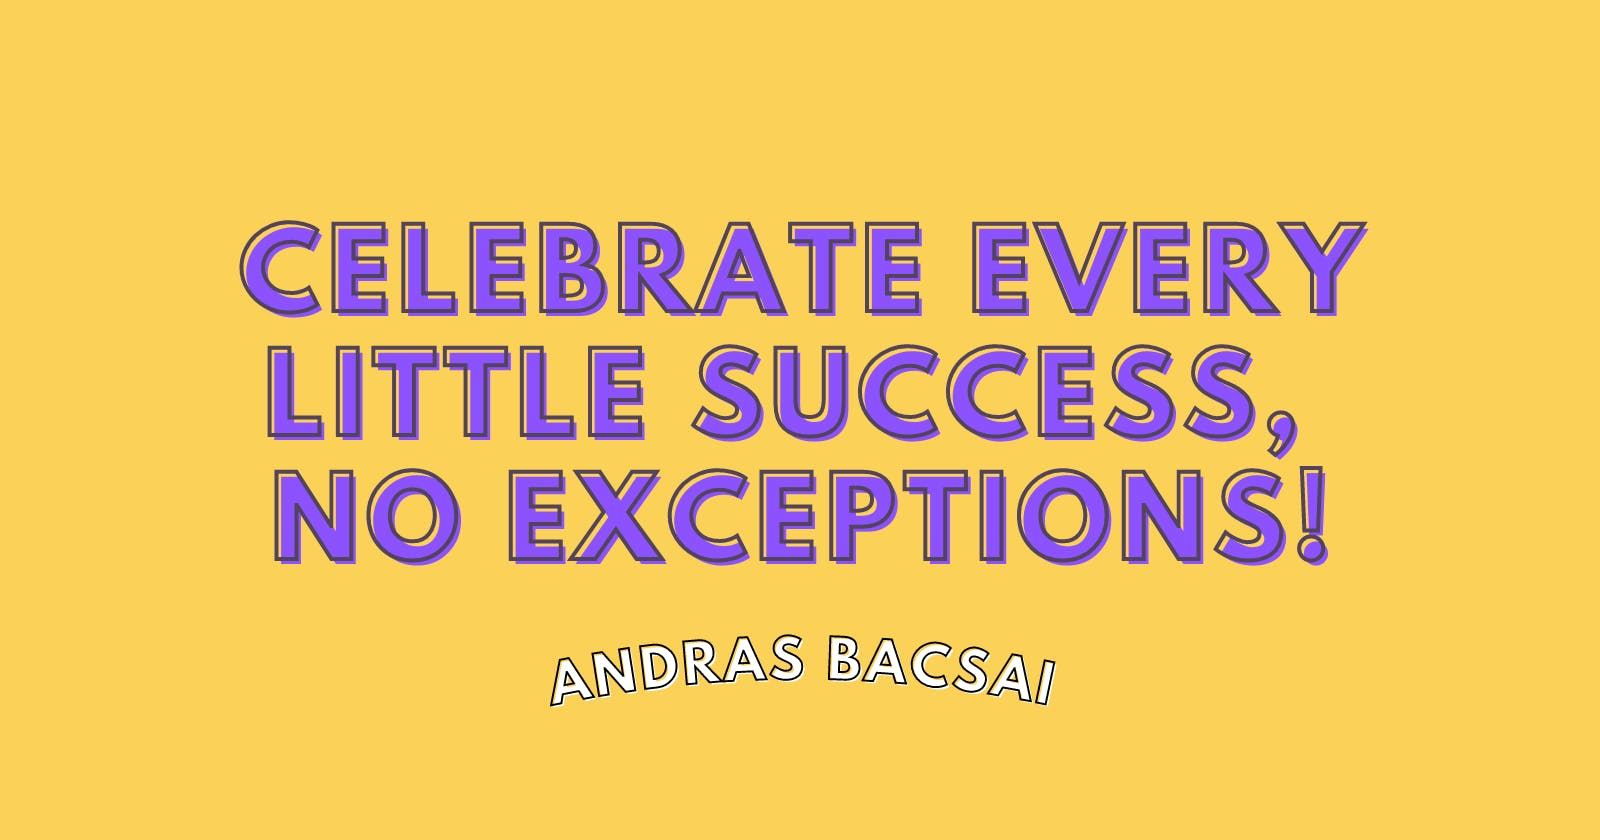 Celebrate every little success, no exceptions!